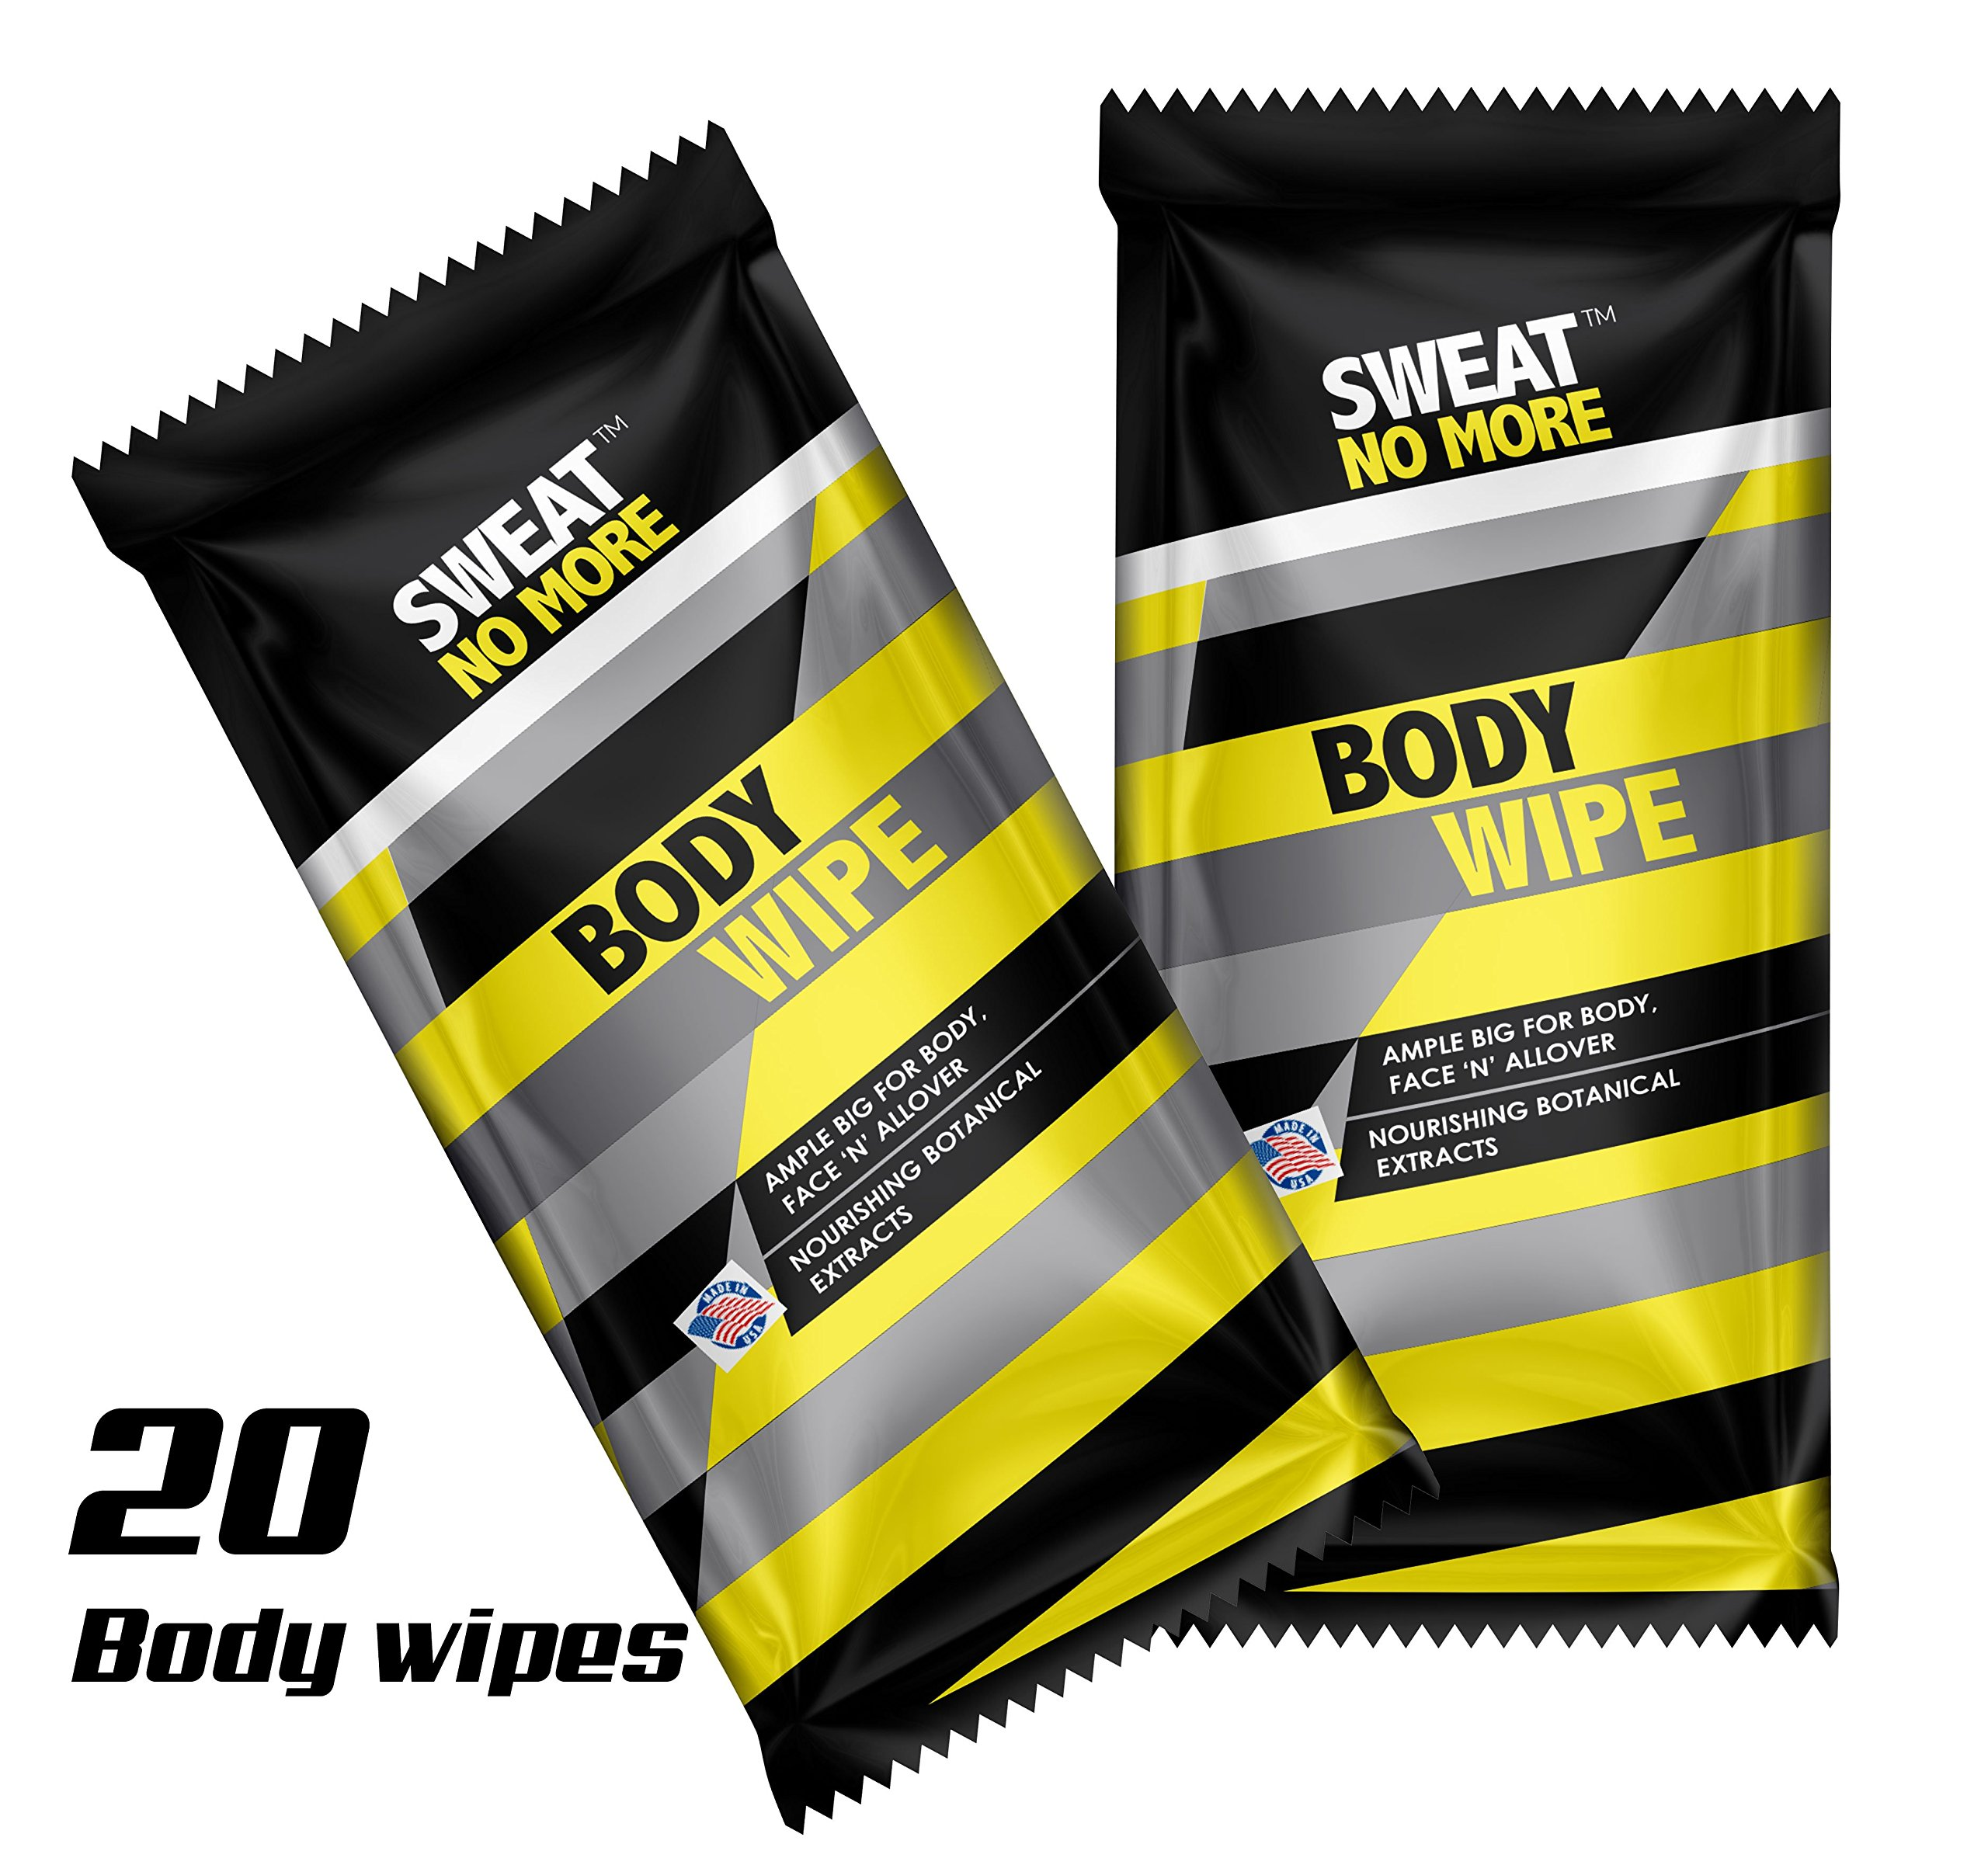 Sweat No More Extra Large 10 x 9'' Body Wipes for Outdoor Activities Cleaning and Deodorizing, Remover Sweat, Dirt and Body Odor, Individually Wrapped - Pack of 20